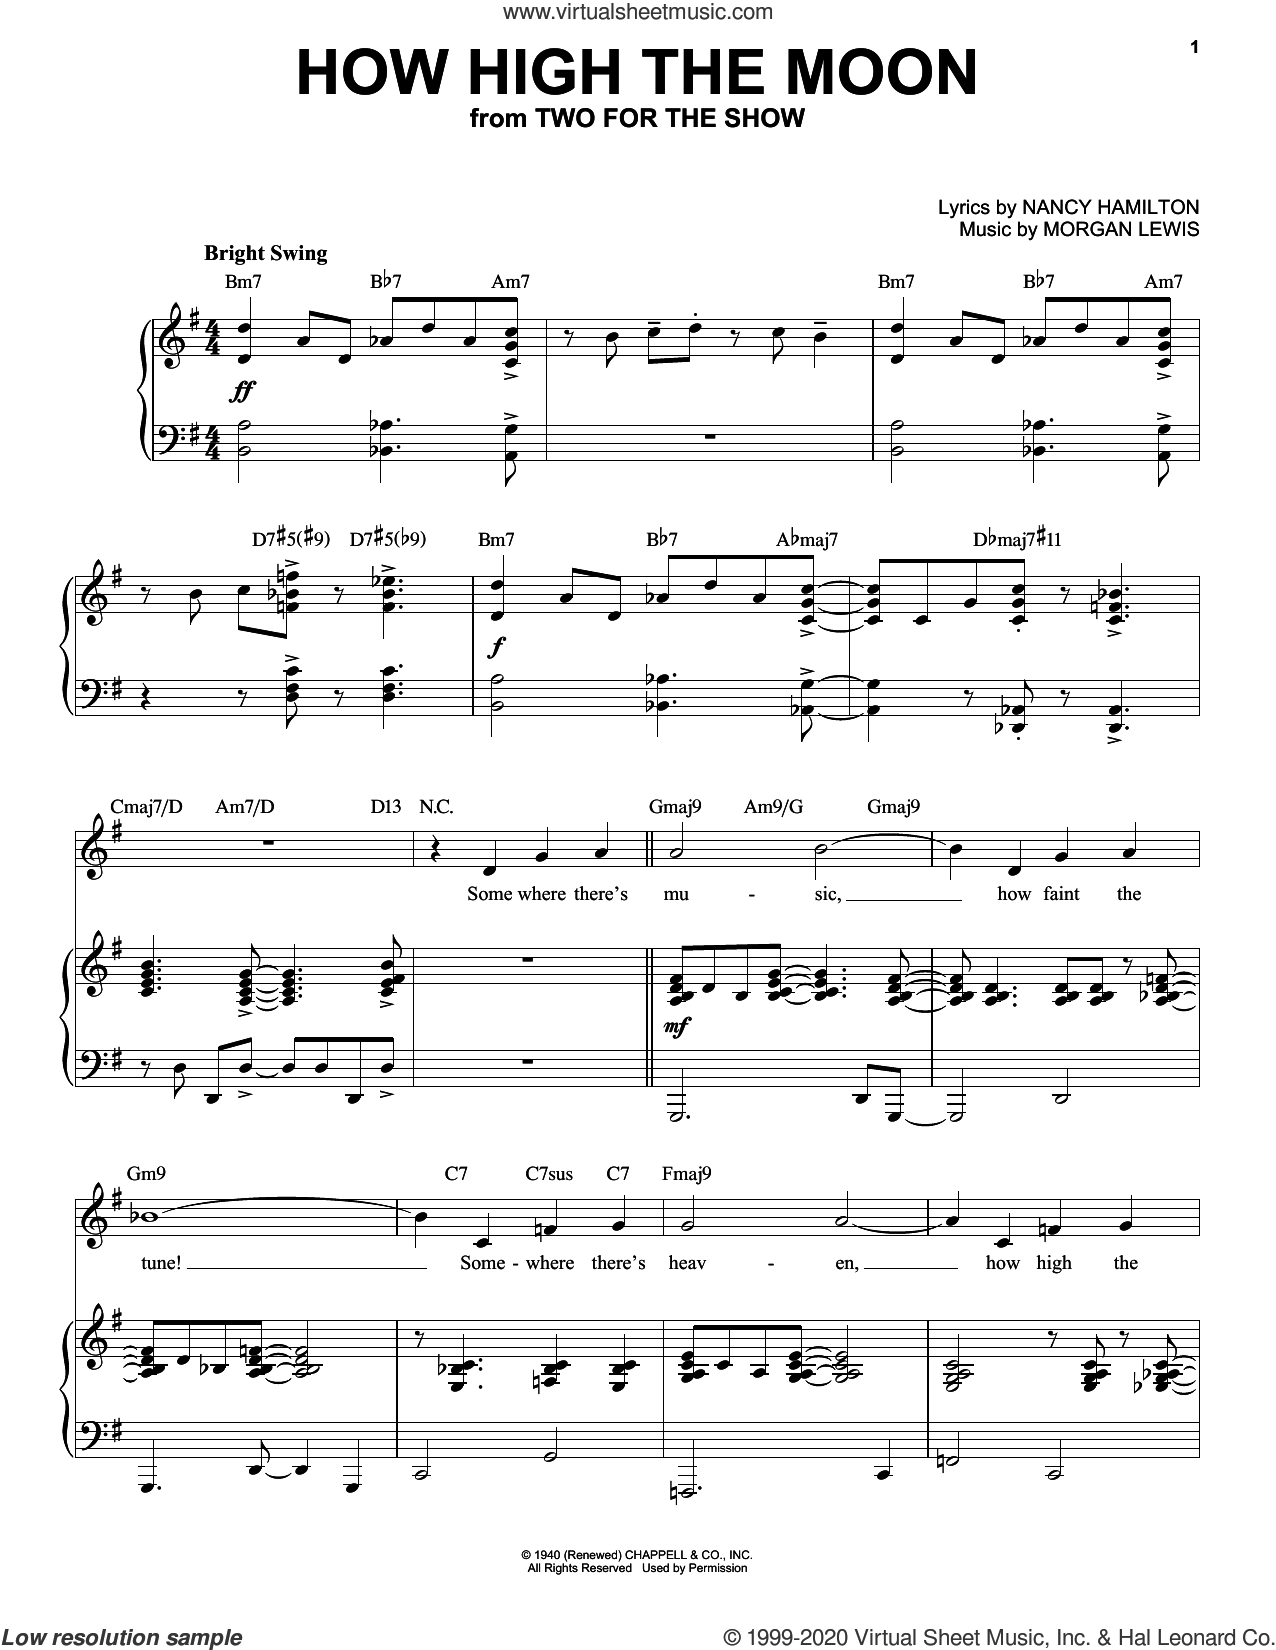 How High The Moon [Jazz version] (arr. Brent Edstrom) sheet music for voice and piano (High Voice) by Morgan Lewis, Brent Edstrom, Nancy Hamilton and Nancy Hamilton and Morgan Lewis, intermediate skill level